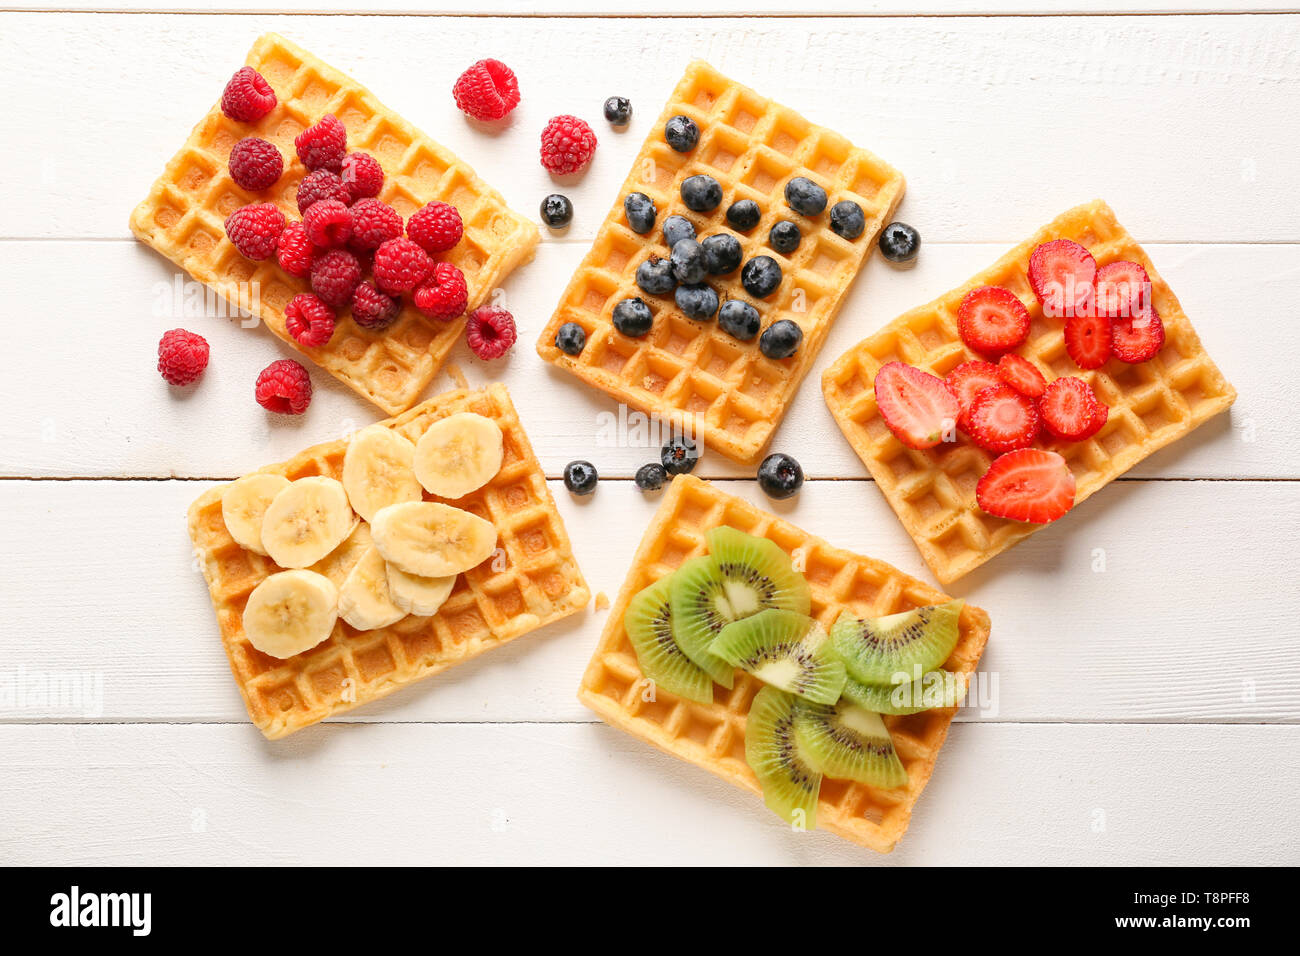 Delicious waffles with fruits and berries on white wooden background - Stock Image